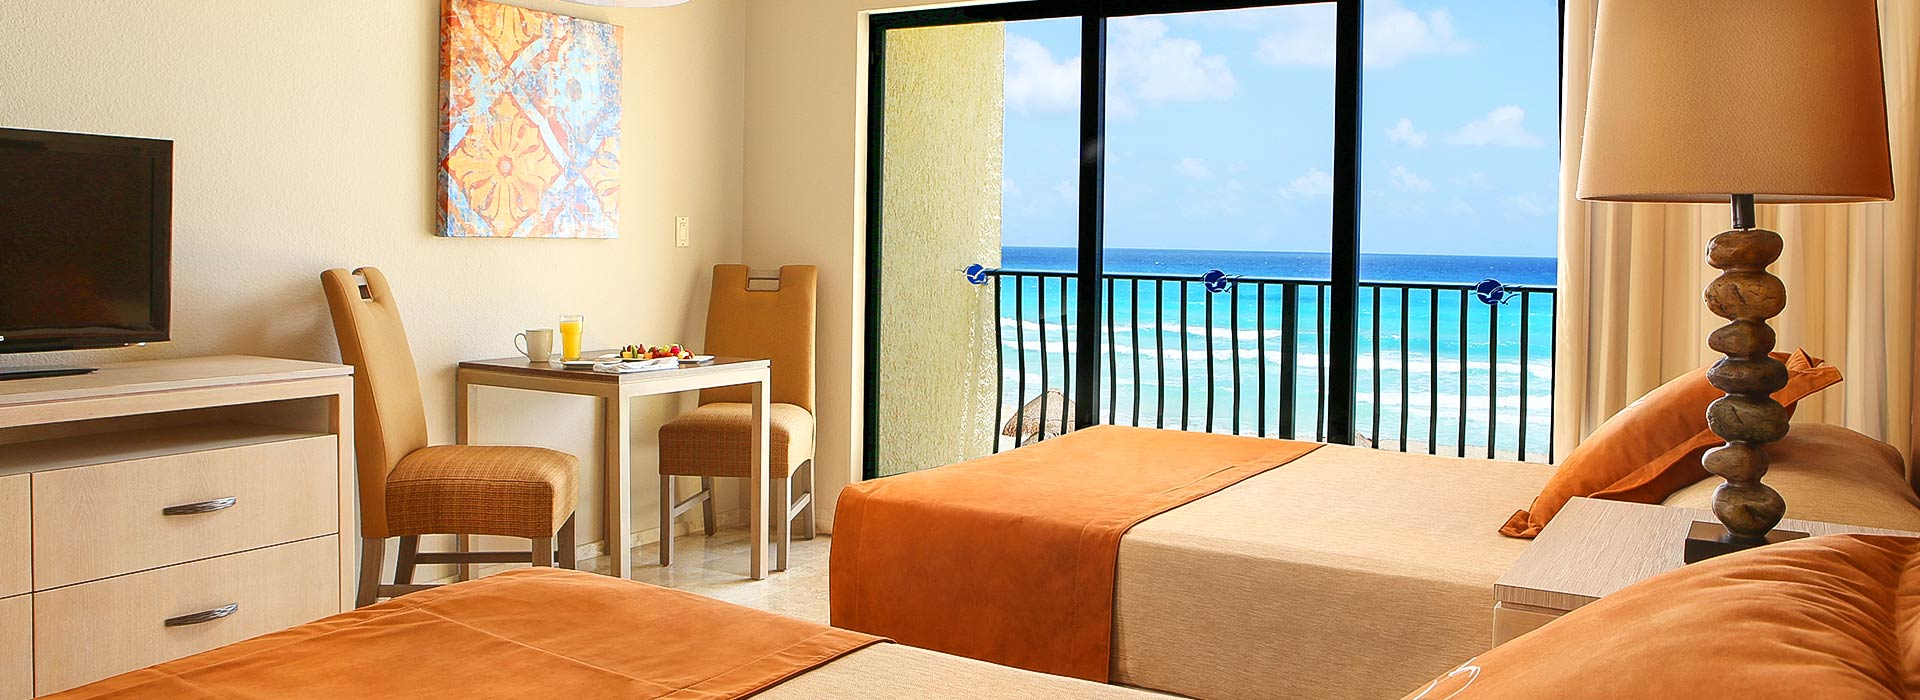 Ocean View Villas With Two Bedroom Suites And Double Beds In The Royal Sands All